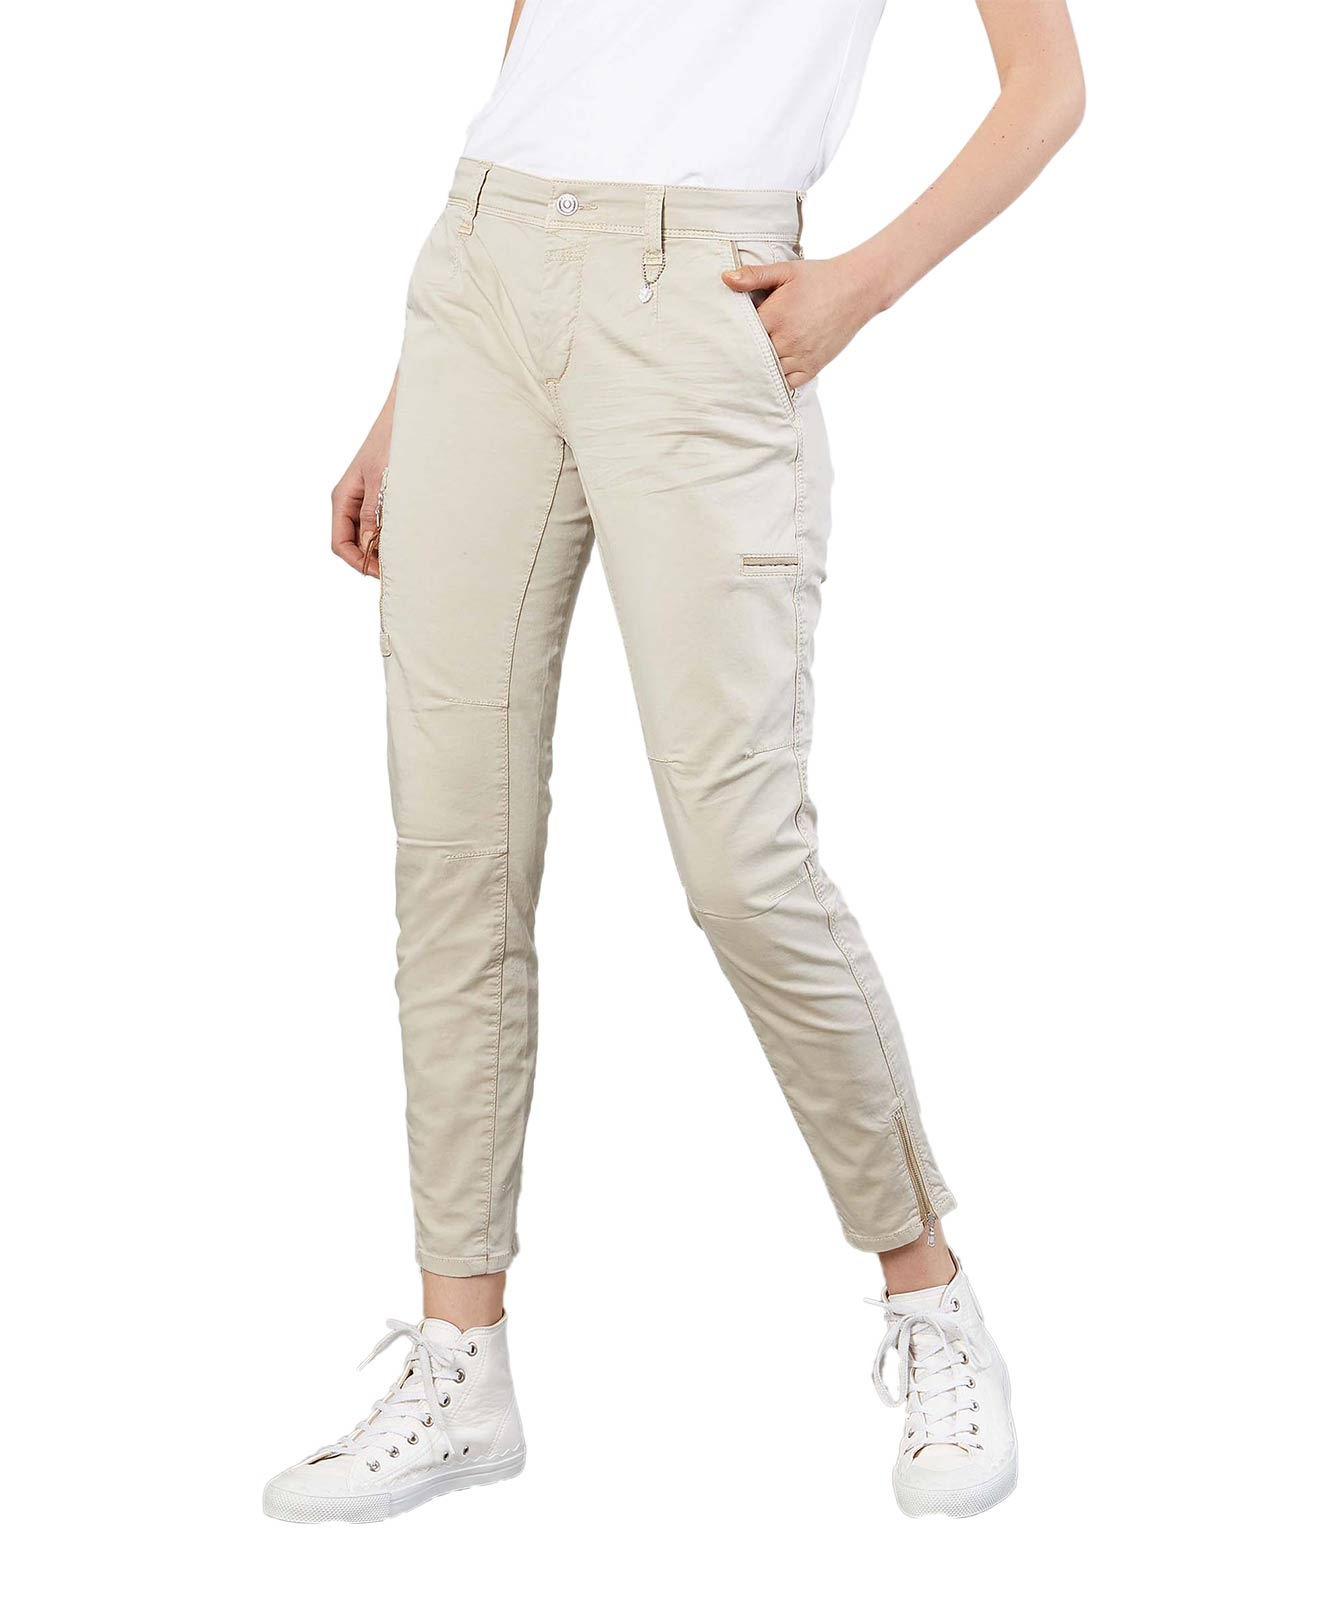 Hosen - Mac Relaxed Fit Cargohose Rich in Smoothly Beige  - Onlineshop Jeans Meile